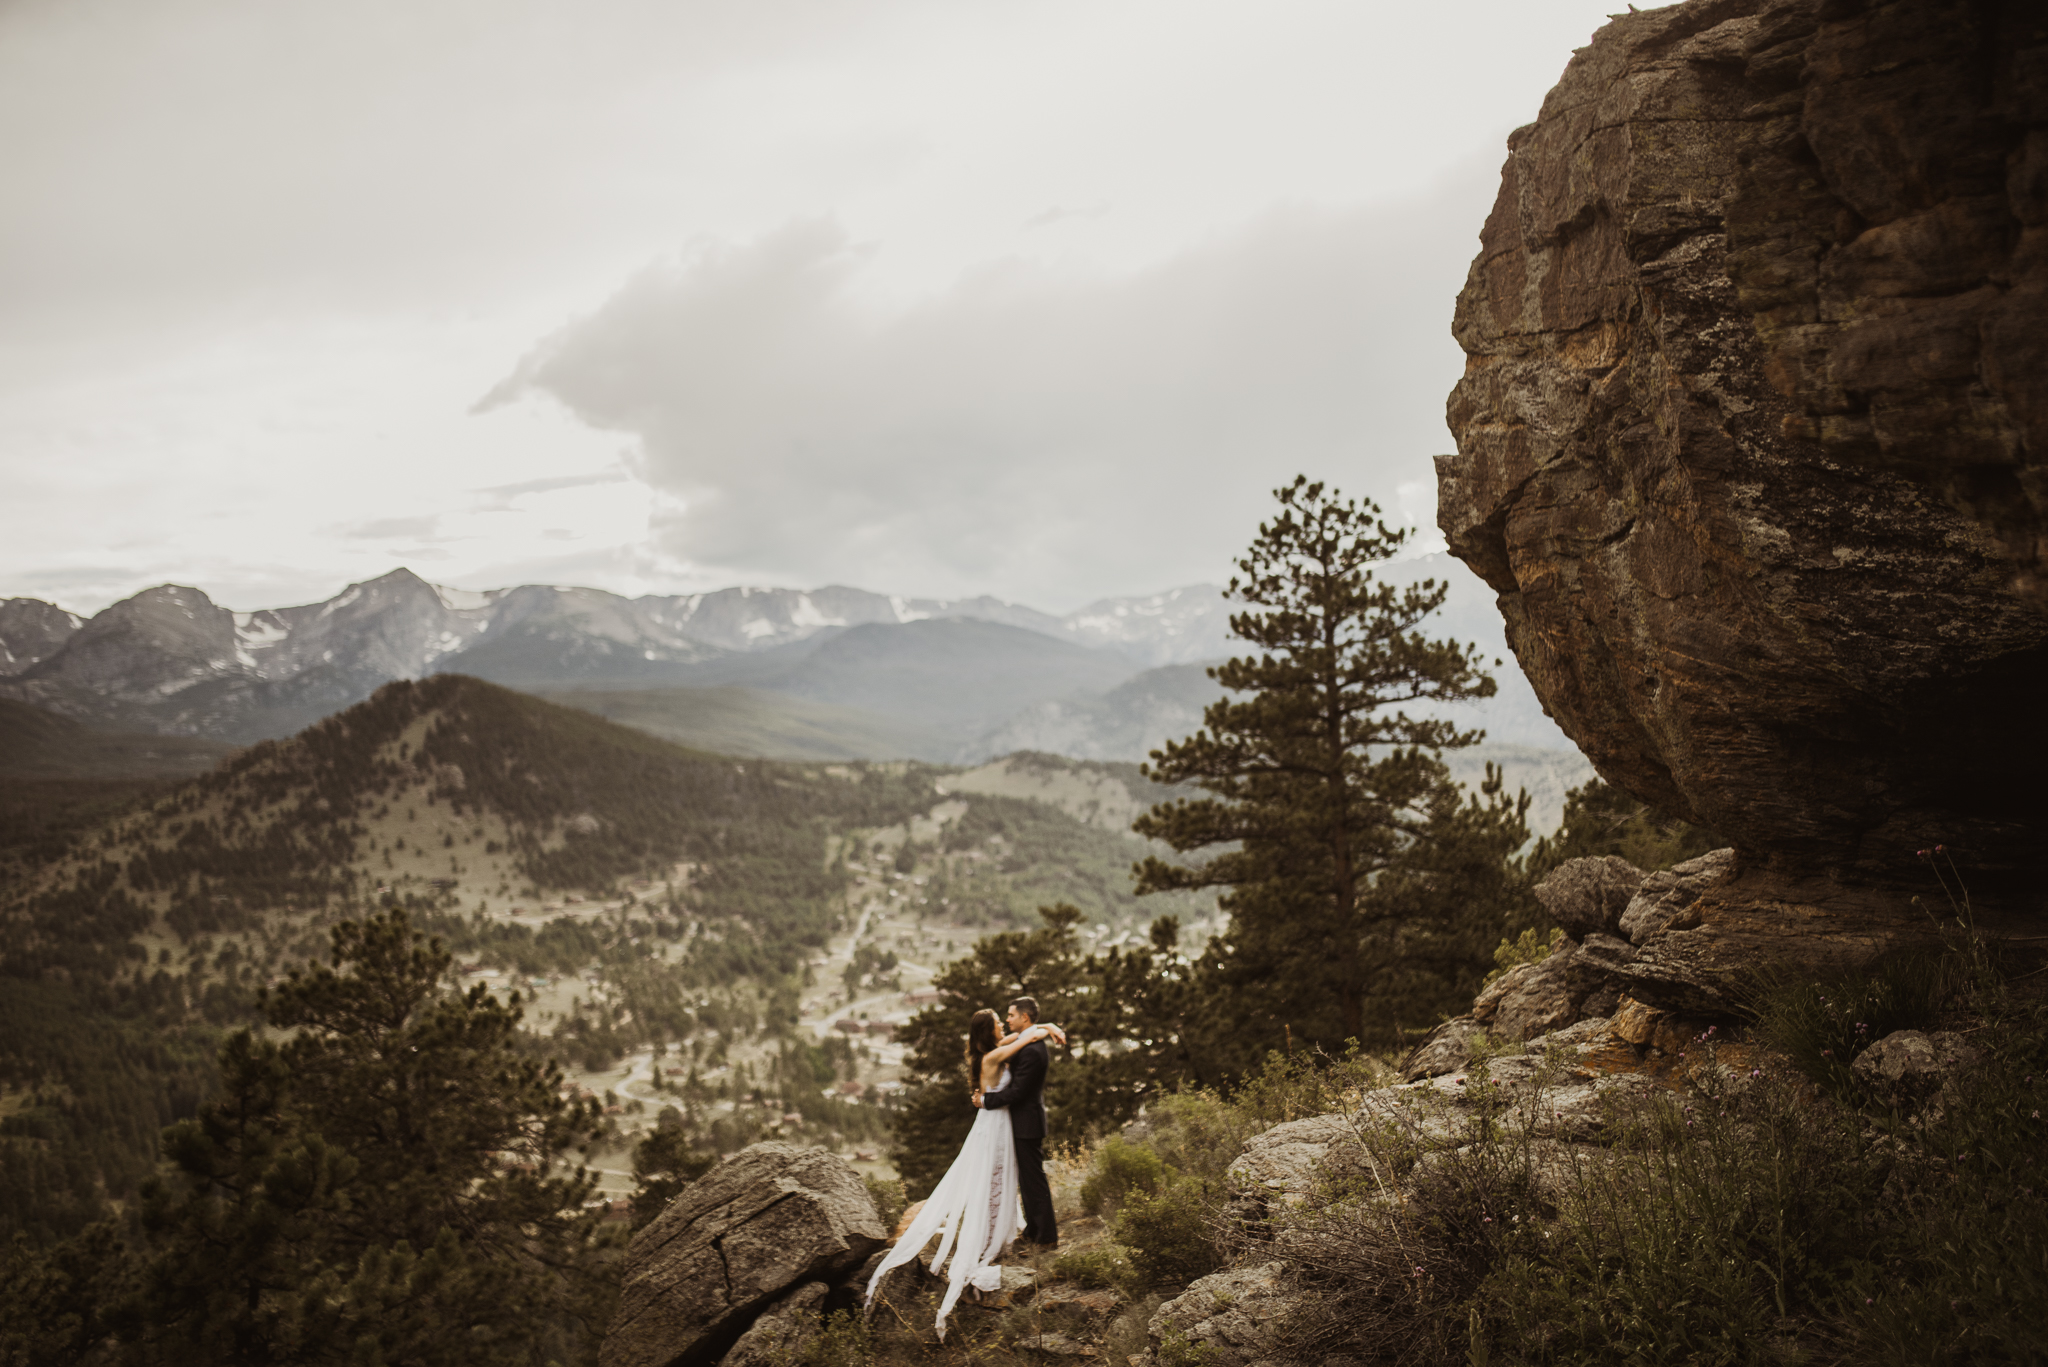 ©Isaiah + Taylor Photography - Estes National Park Adventure Elopement, Colorado Rockies-121.jpg